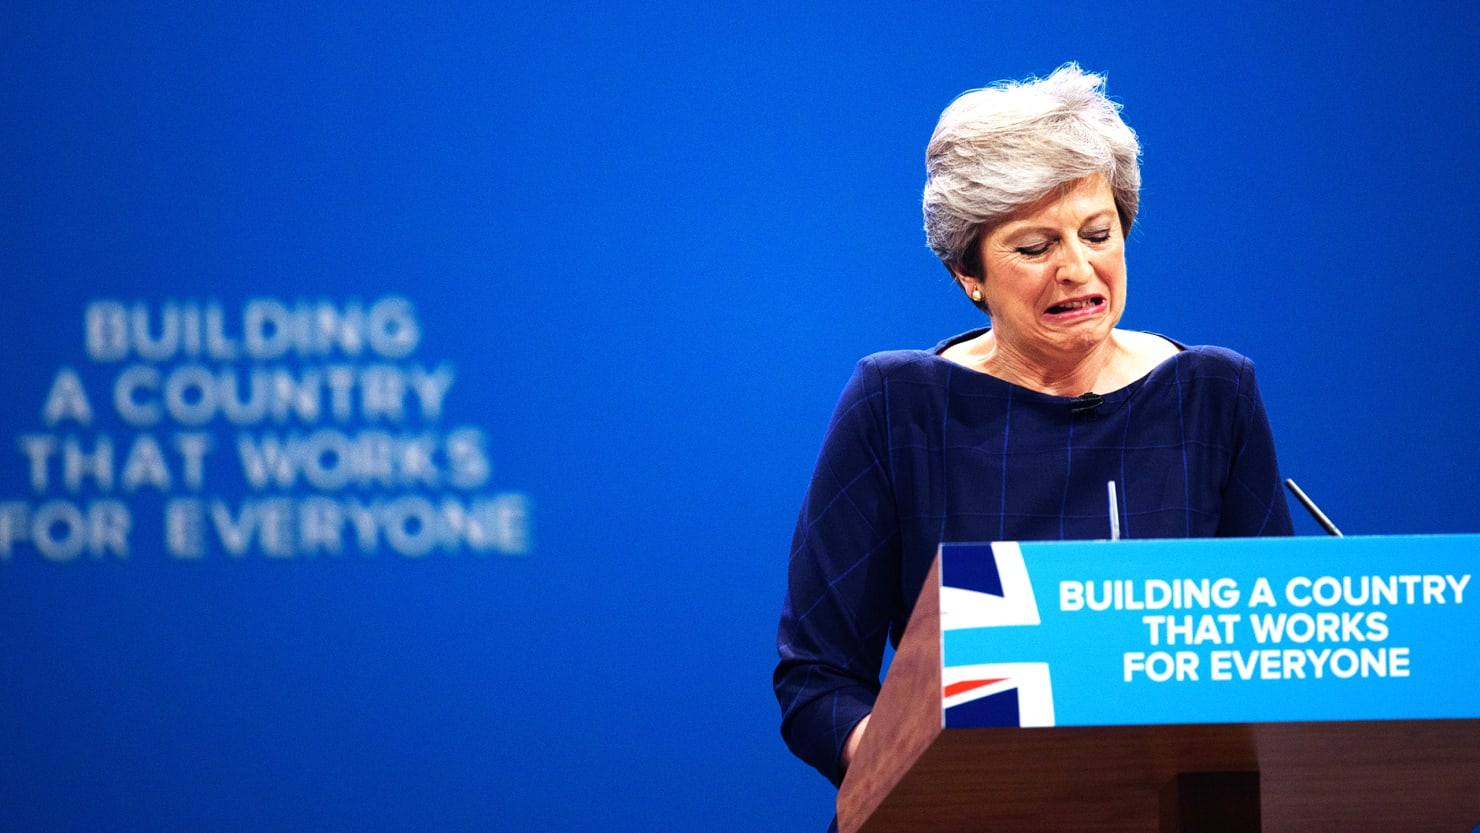 The Sexist Bullying of Britain's Prime Minister Must Stop